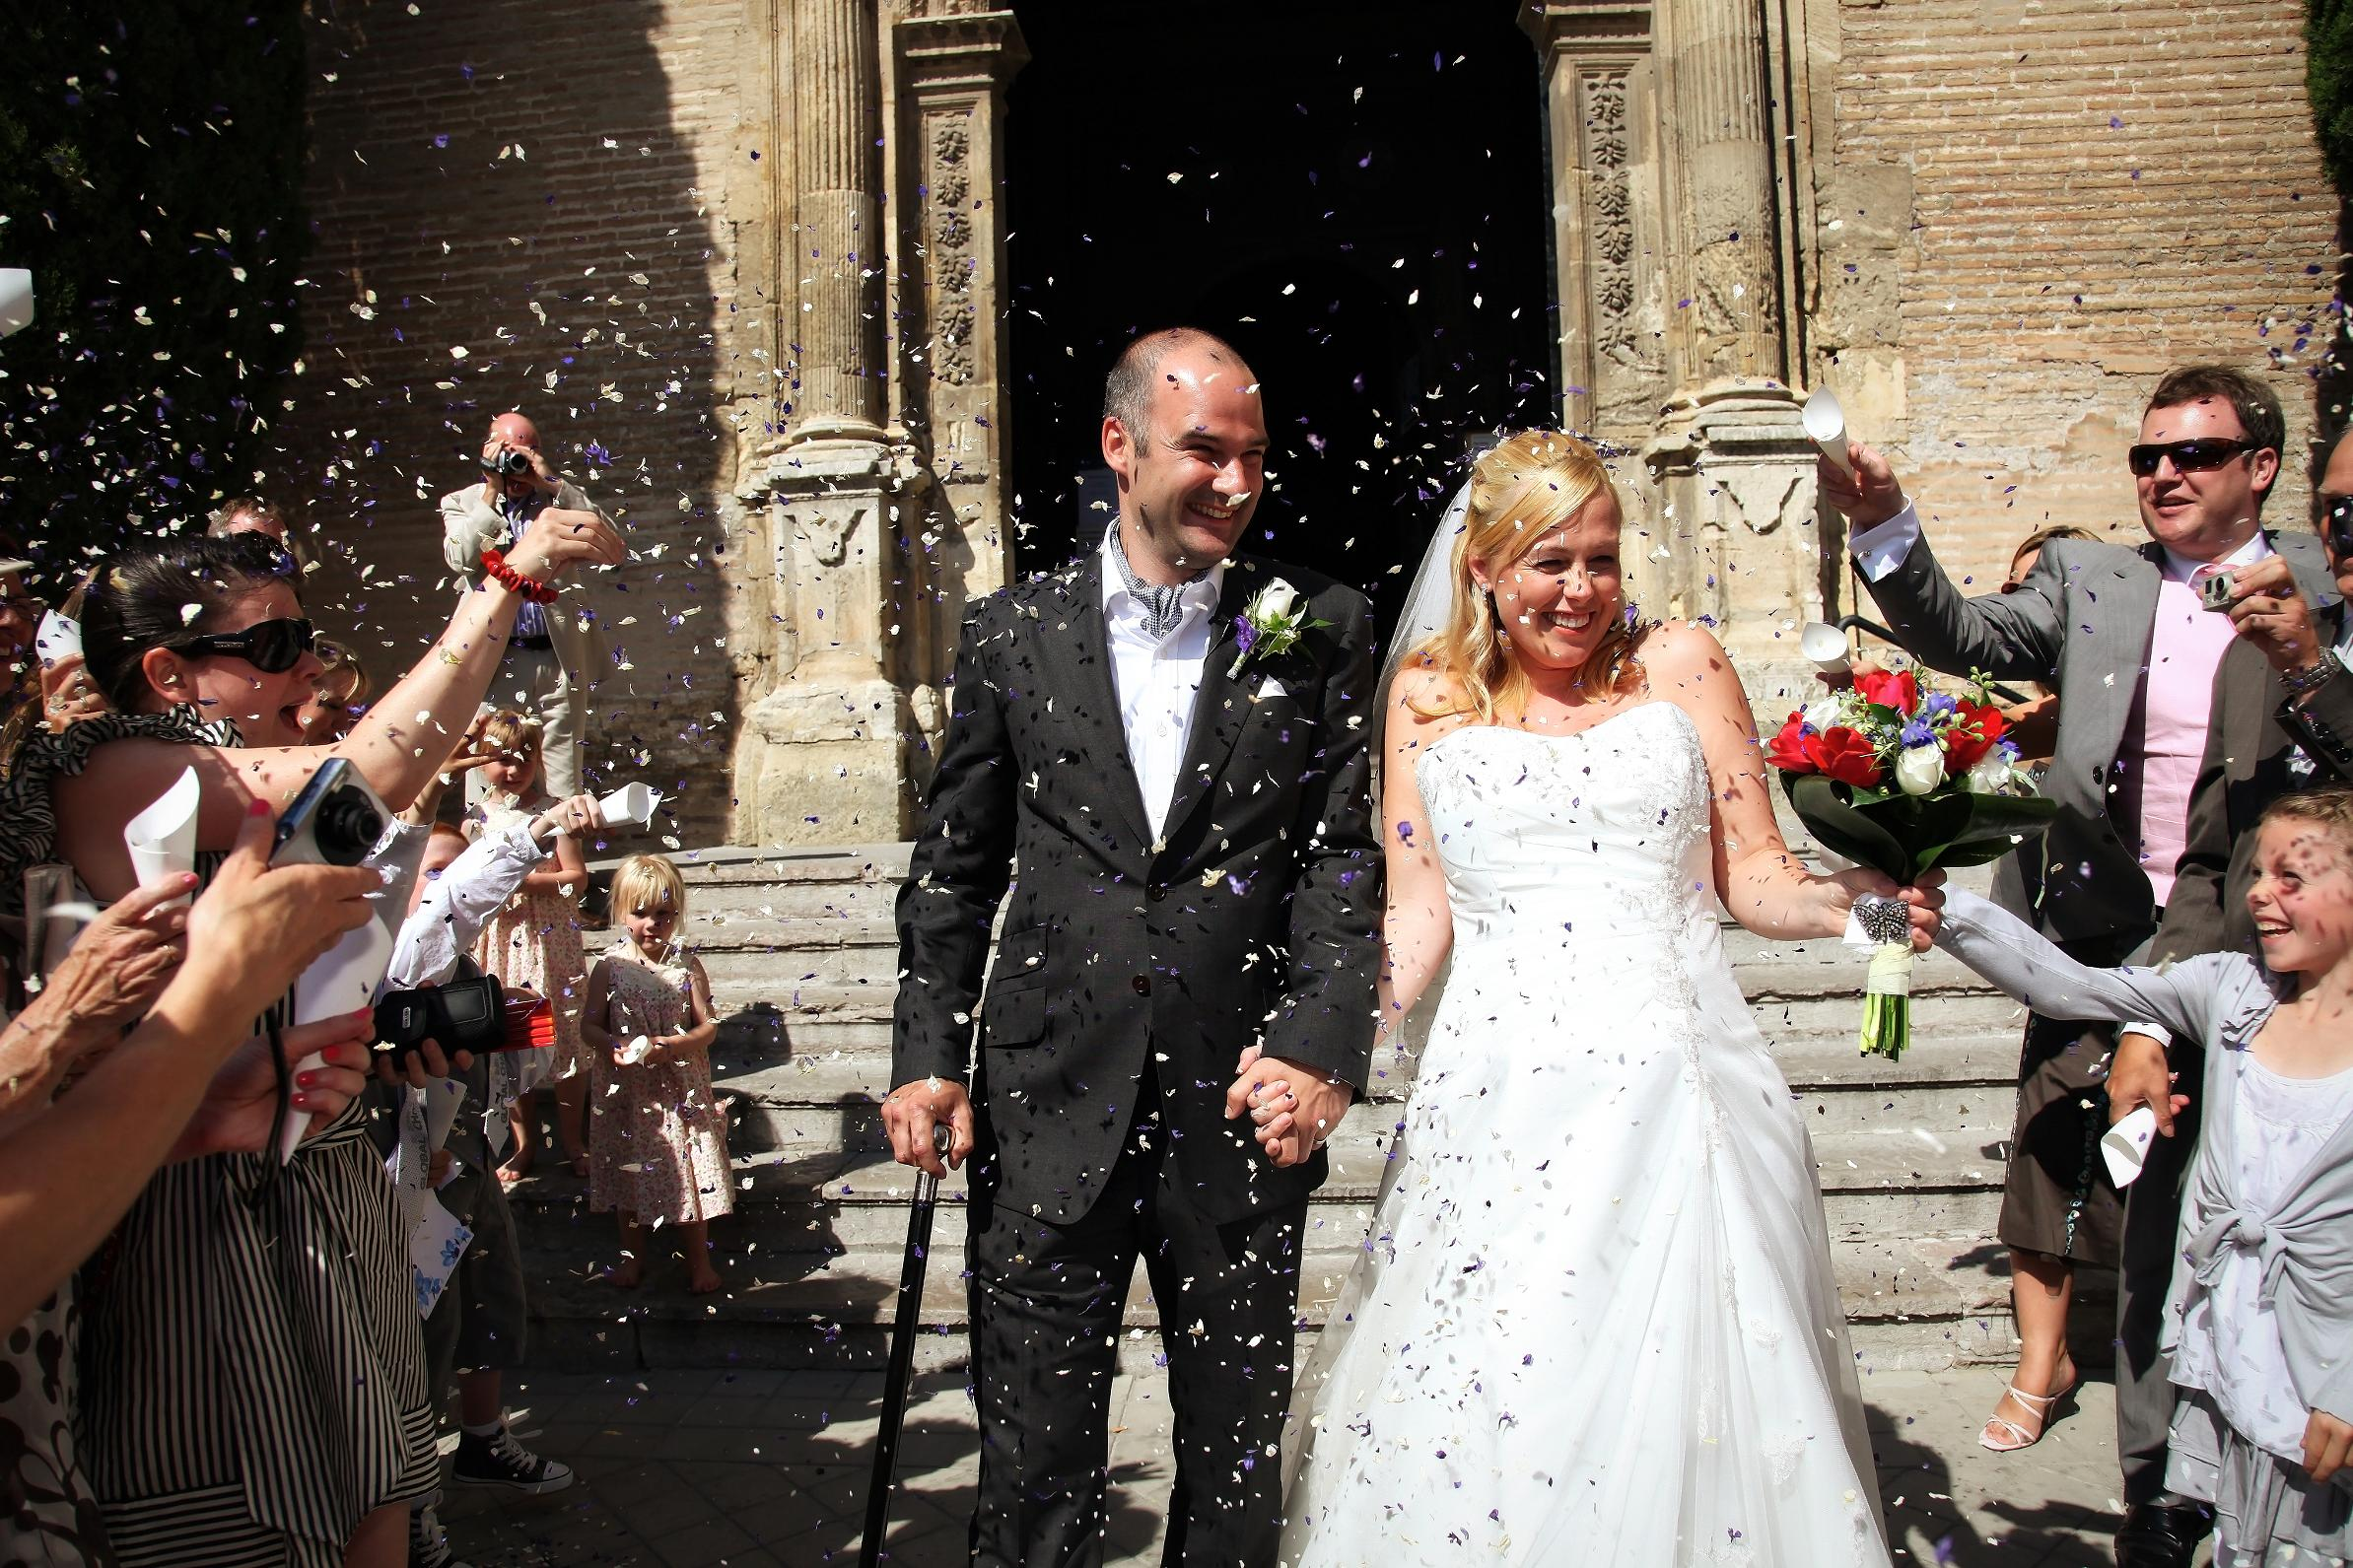 Wedding In Spanish.Spanish Wedding Customs Traditions Awol Granada A Wedding Of A